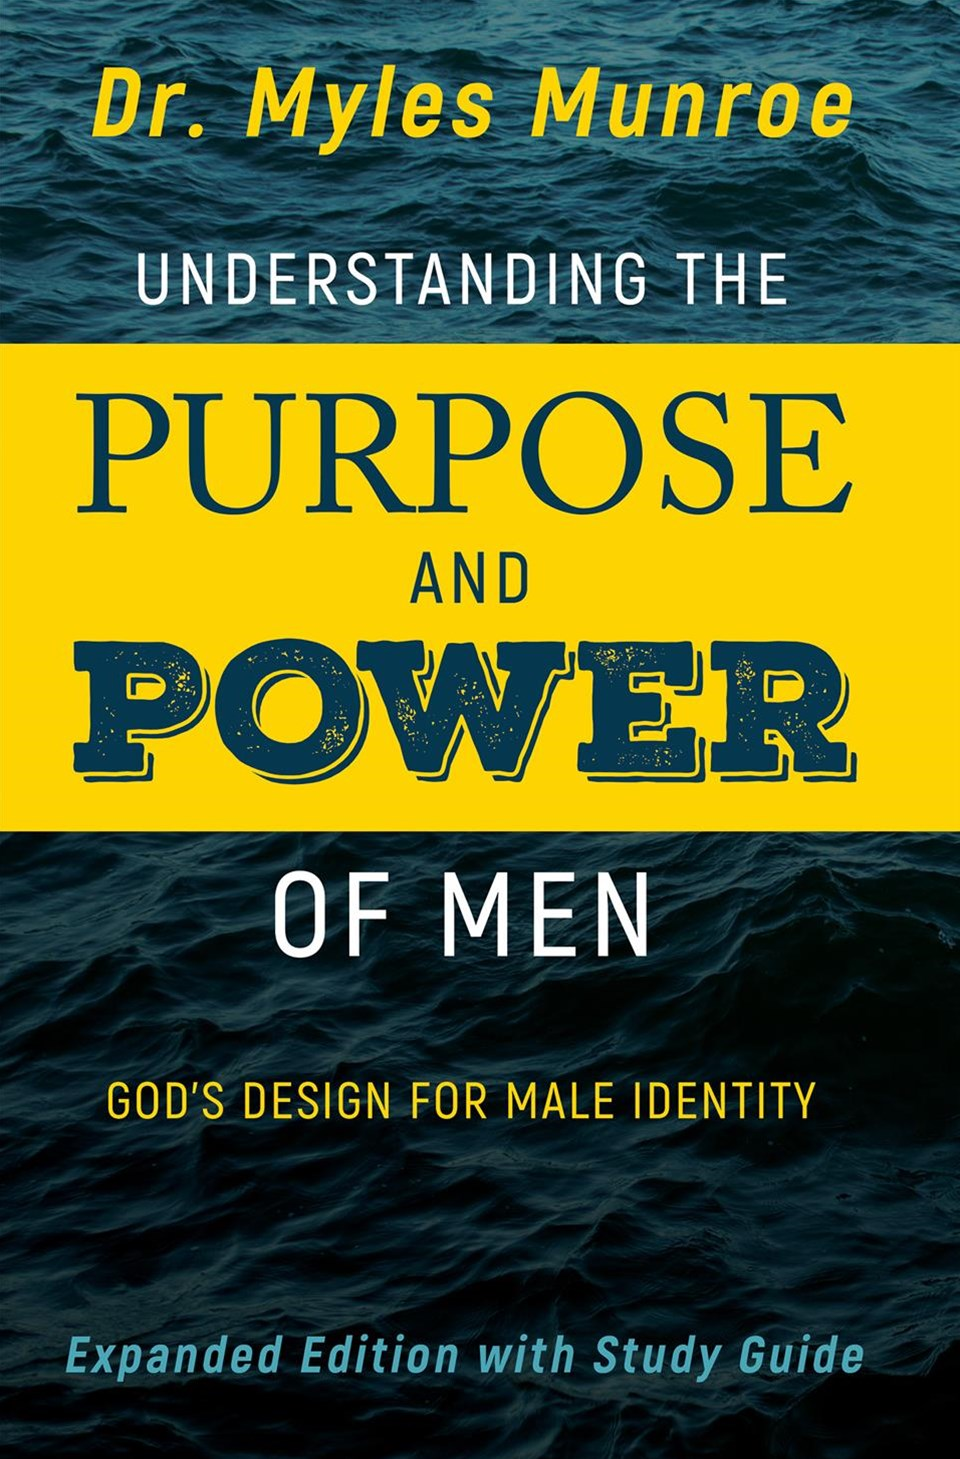 Understanding the Purpose and Power of Men (Expanded Edition)